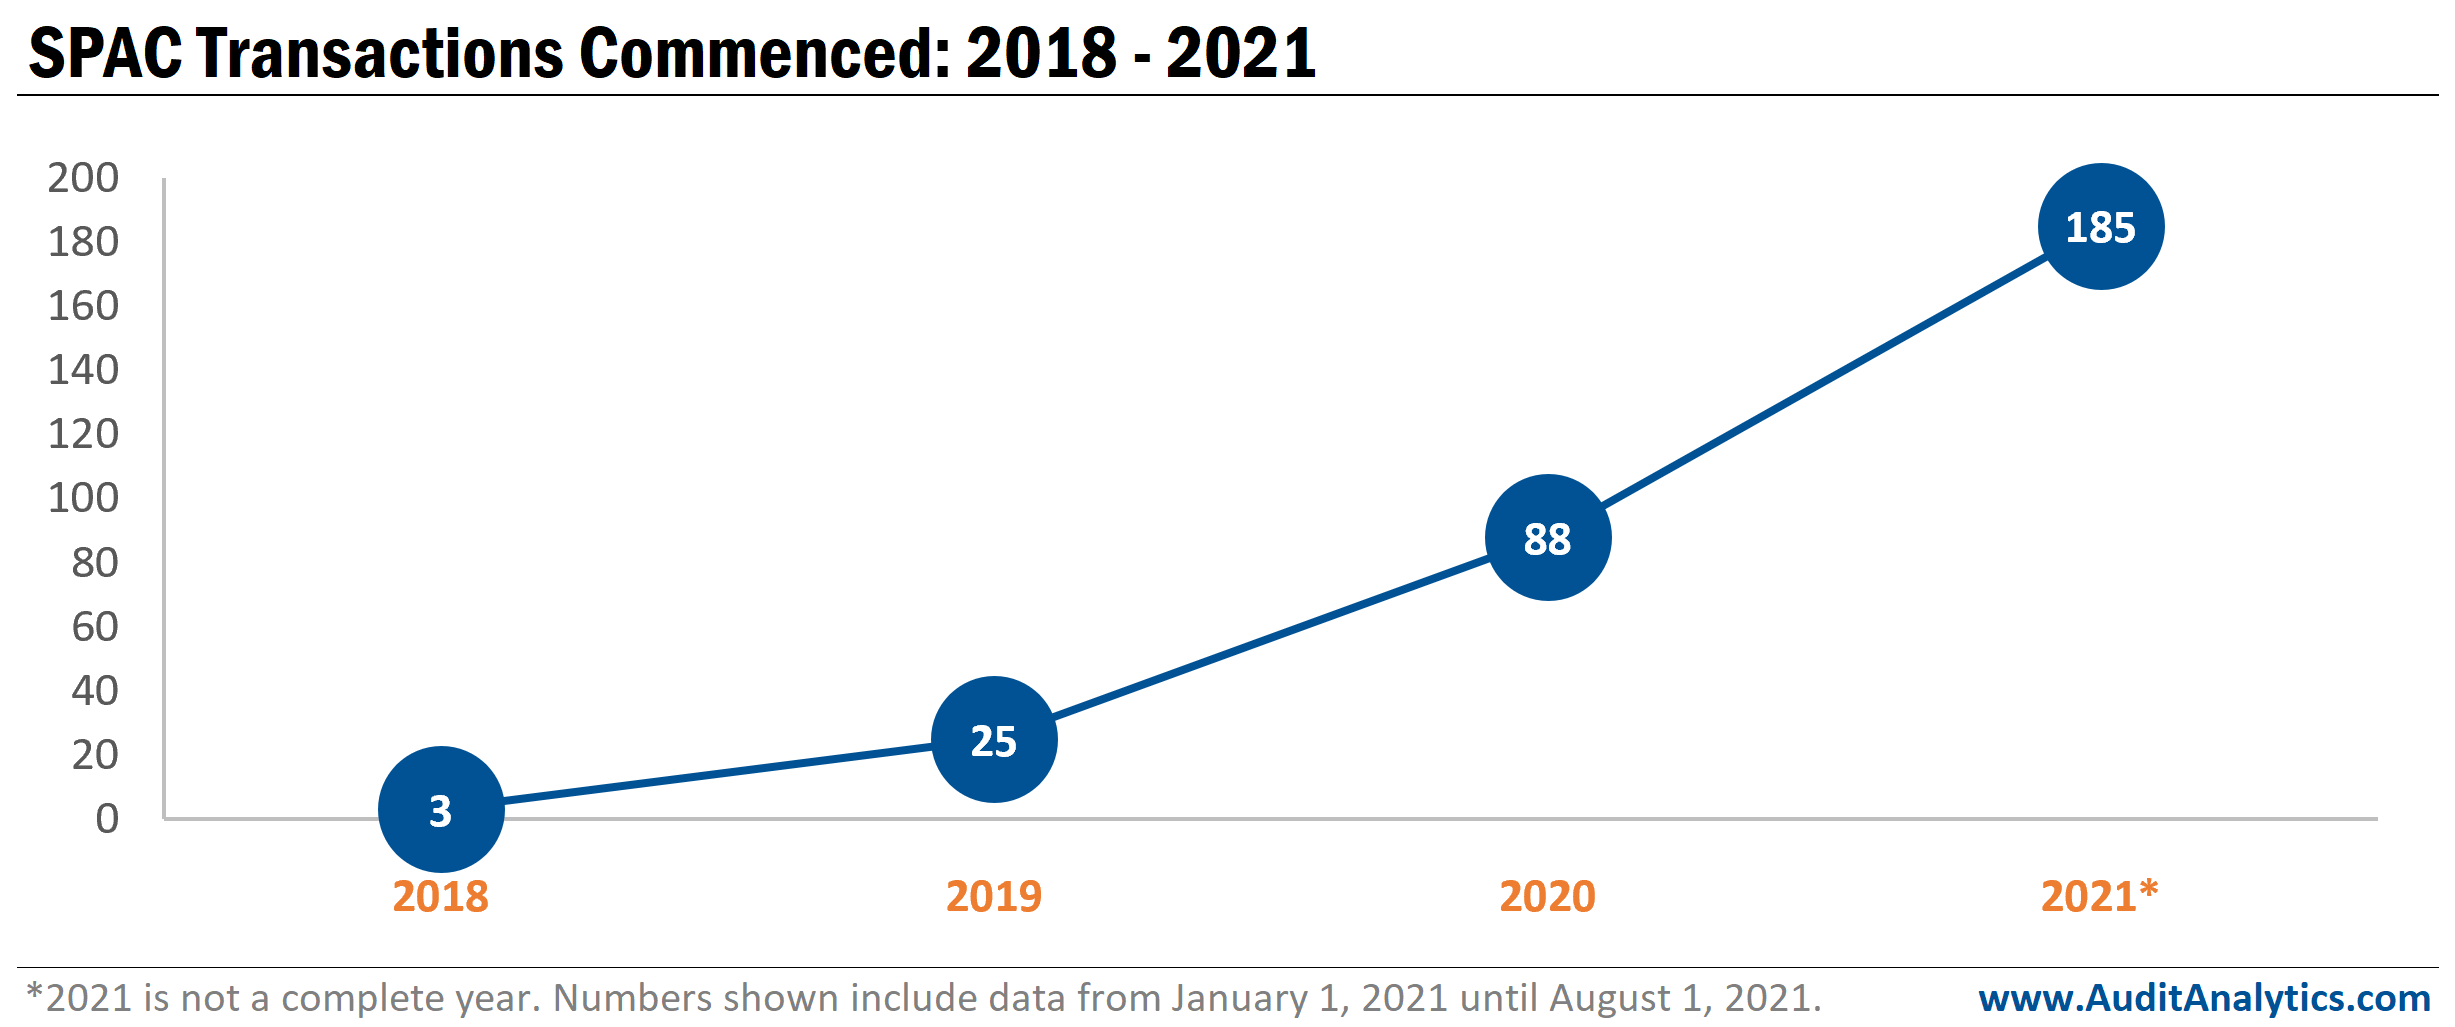 SPAC transactions commenced between 2018 and 2021